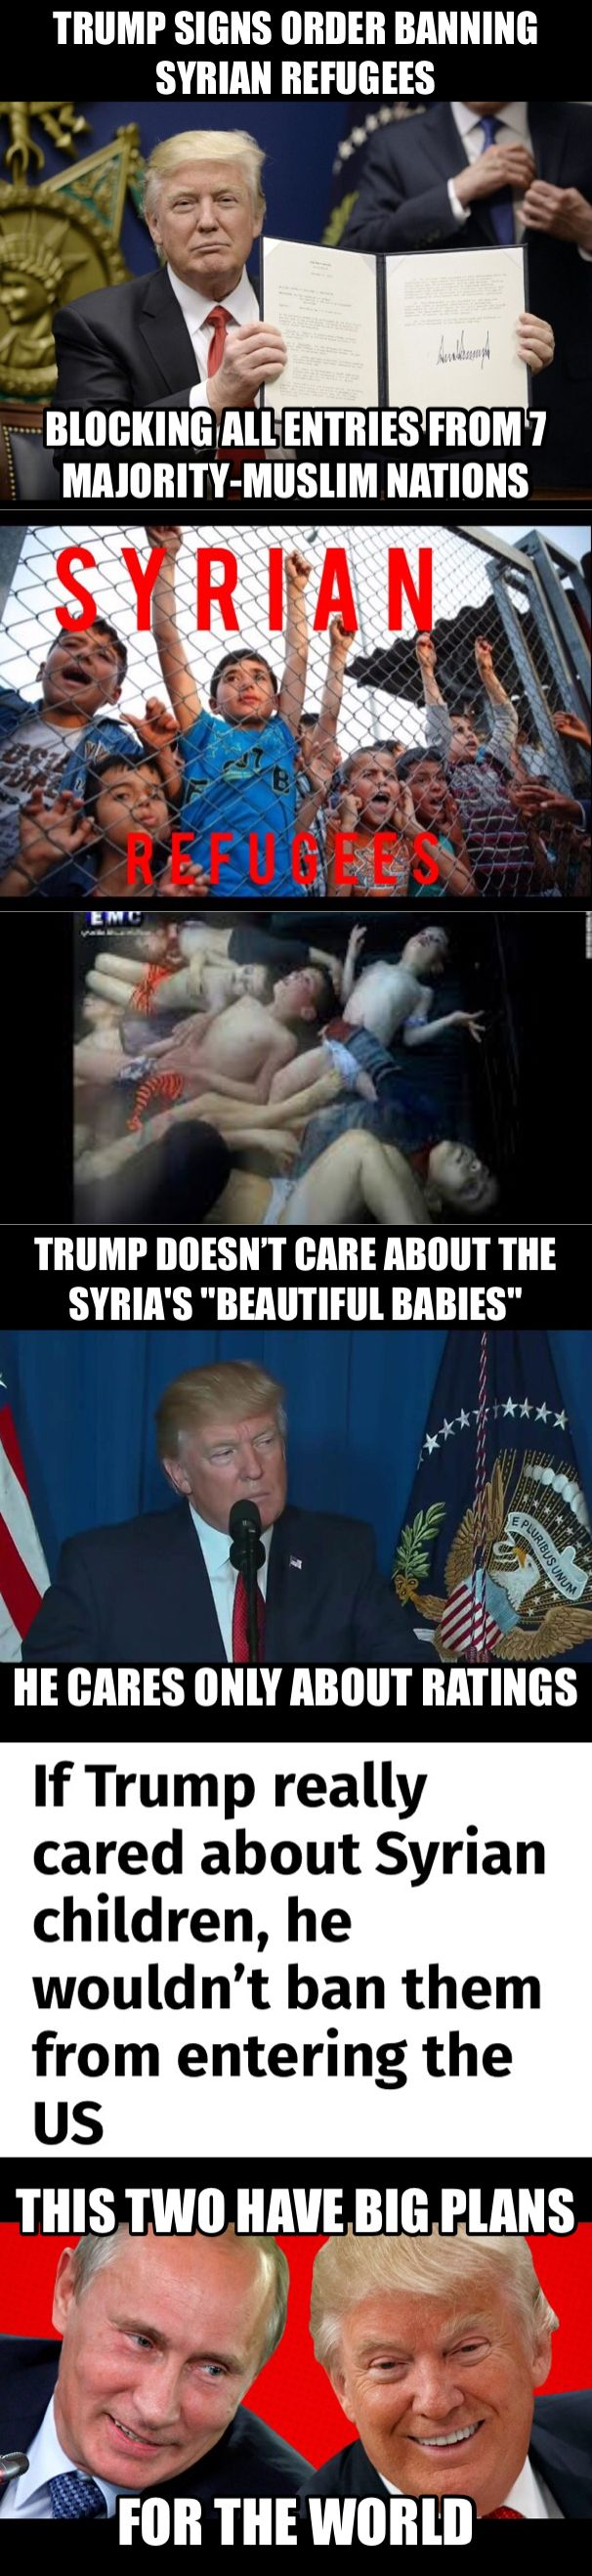 "Trump Still Wants to Keep Syria's ""Beautiful Babies"" Out of the US ""These refugees are fleeing precisely the type of violence we are seeing this week in Syria."" (April/2017)"